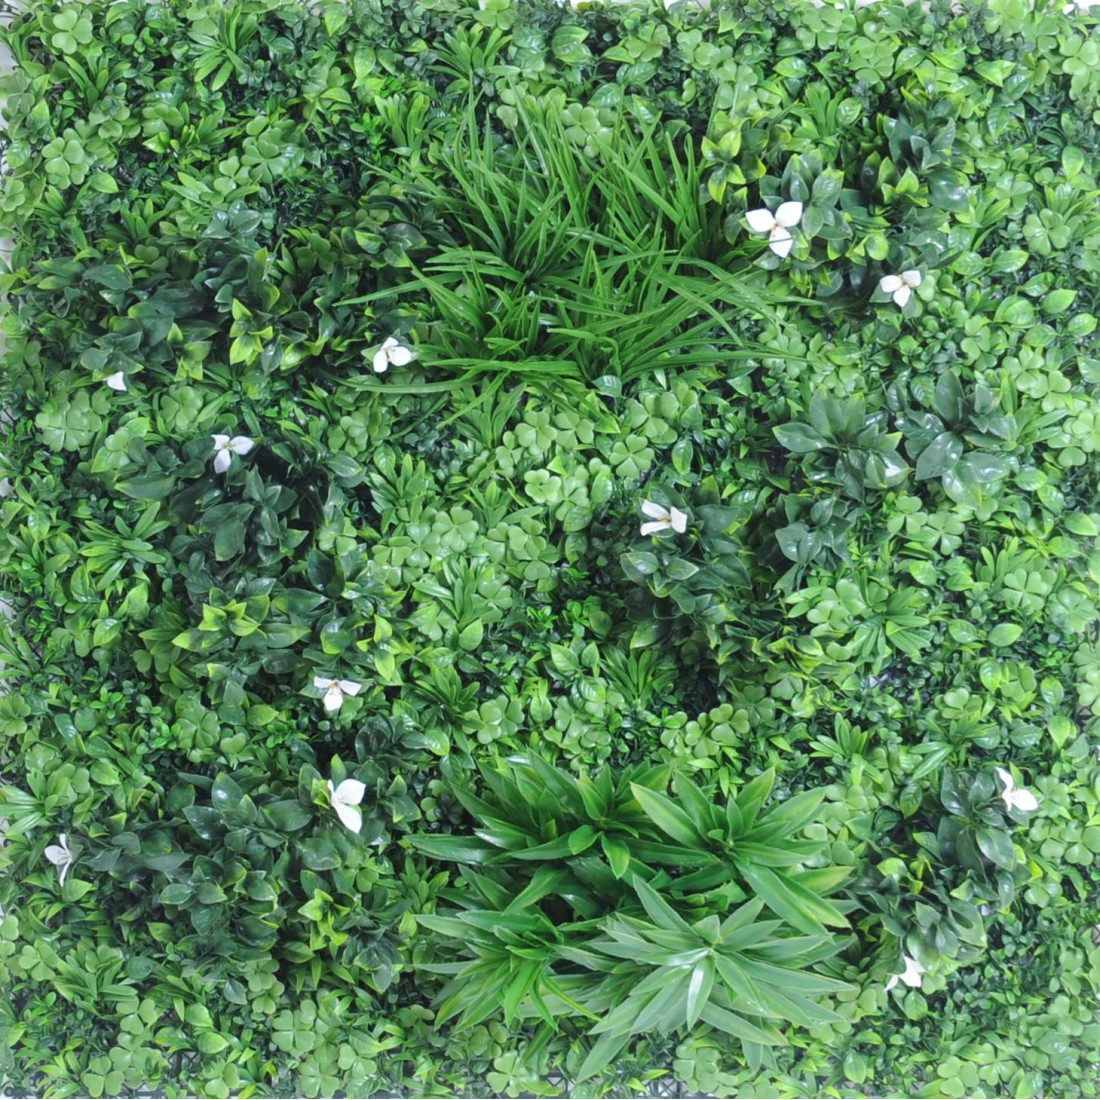 Mur vegetal c 100 x 100 cm plaques synth tique reflets for Mur vegetal exterieur synthetique